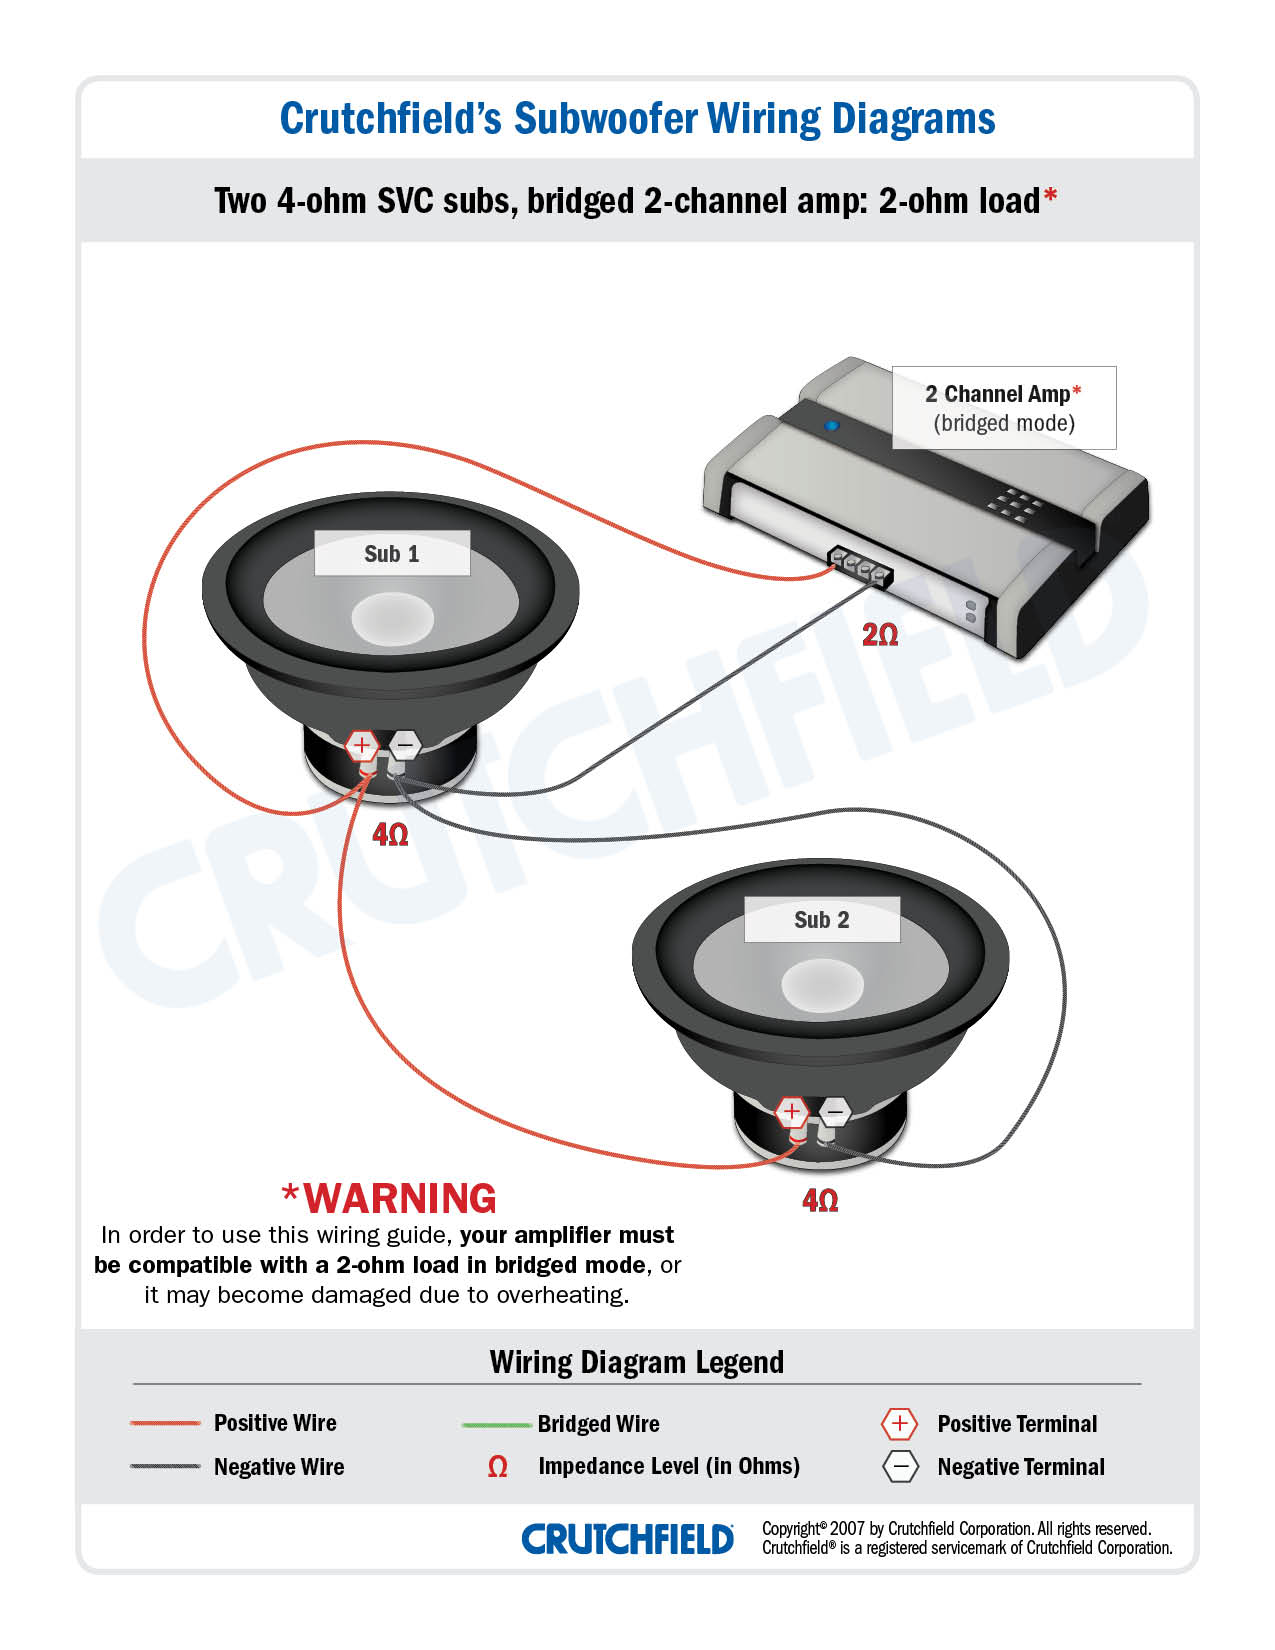 2 SVC 4 ohm 2 ch low imp subwoofer wiring diagrams rockford fosgate speaker wiring diagram at eliteediting.co